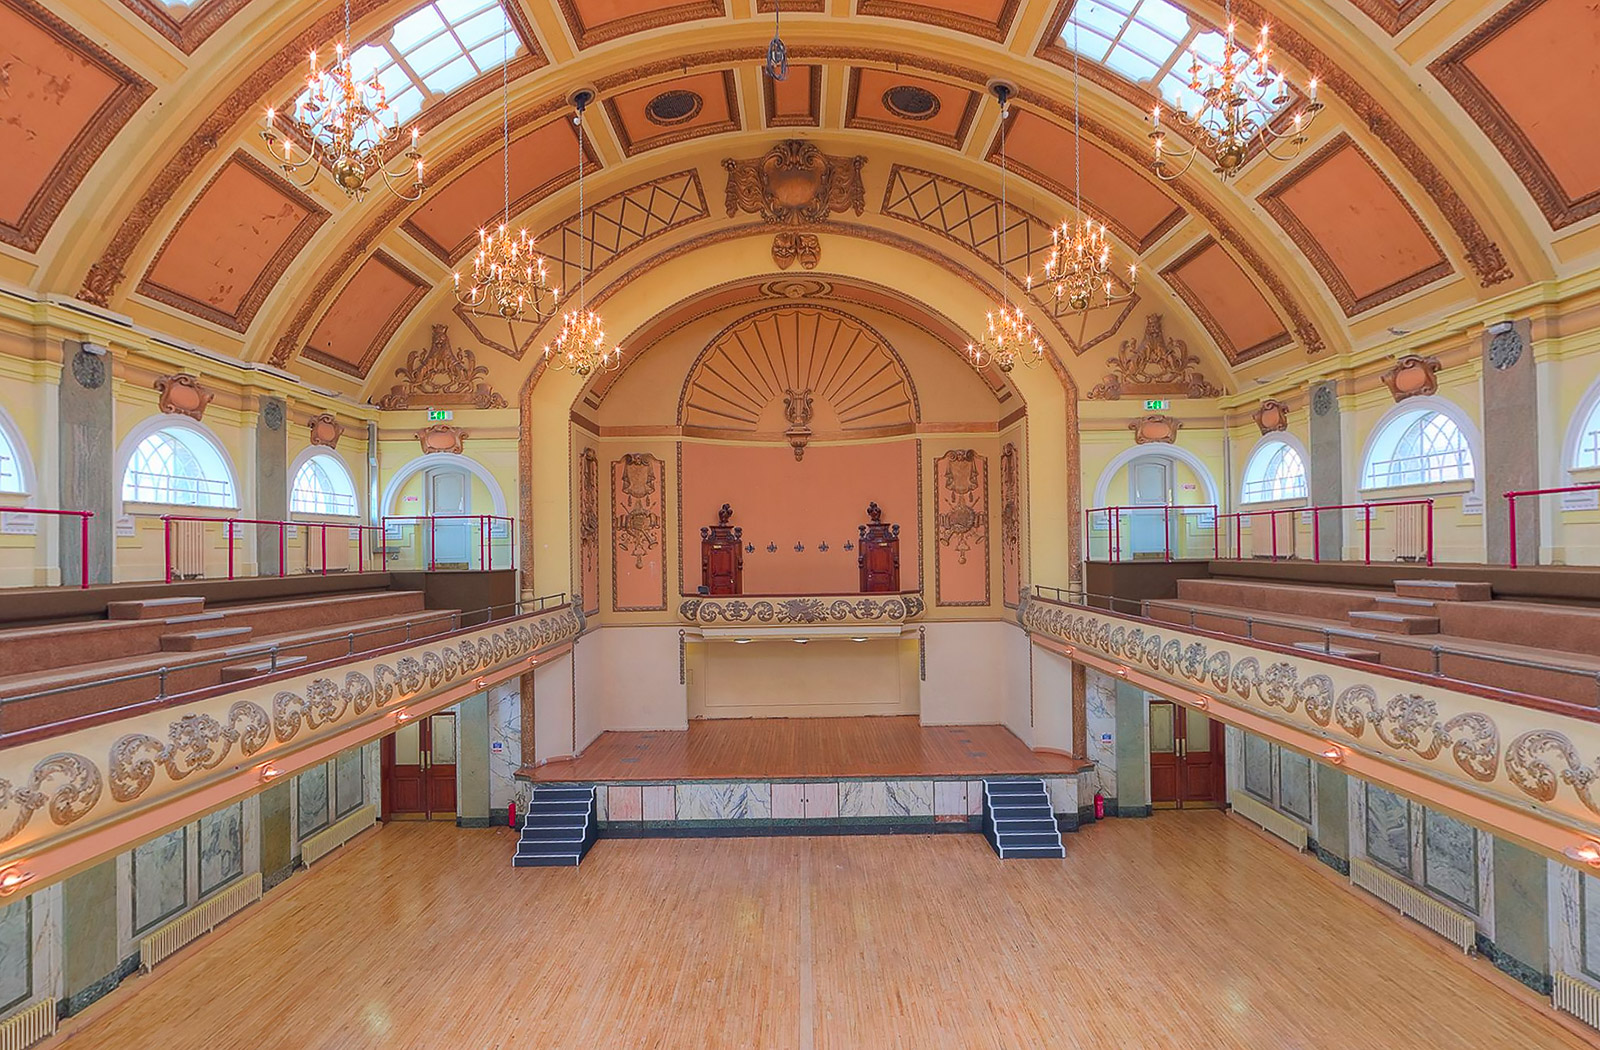 New virtual tours of Shoreditch Town Hall, London